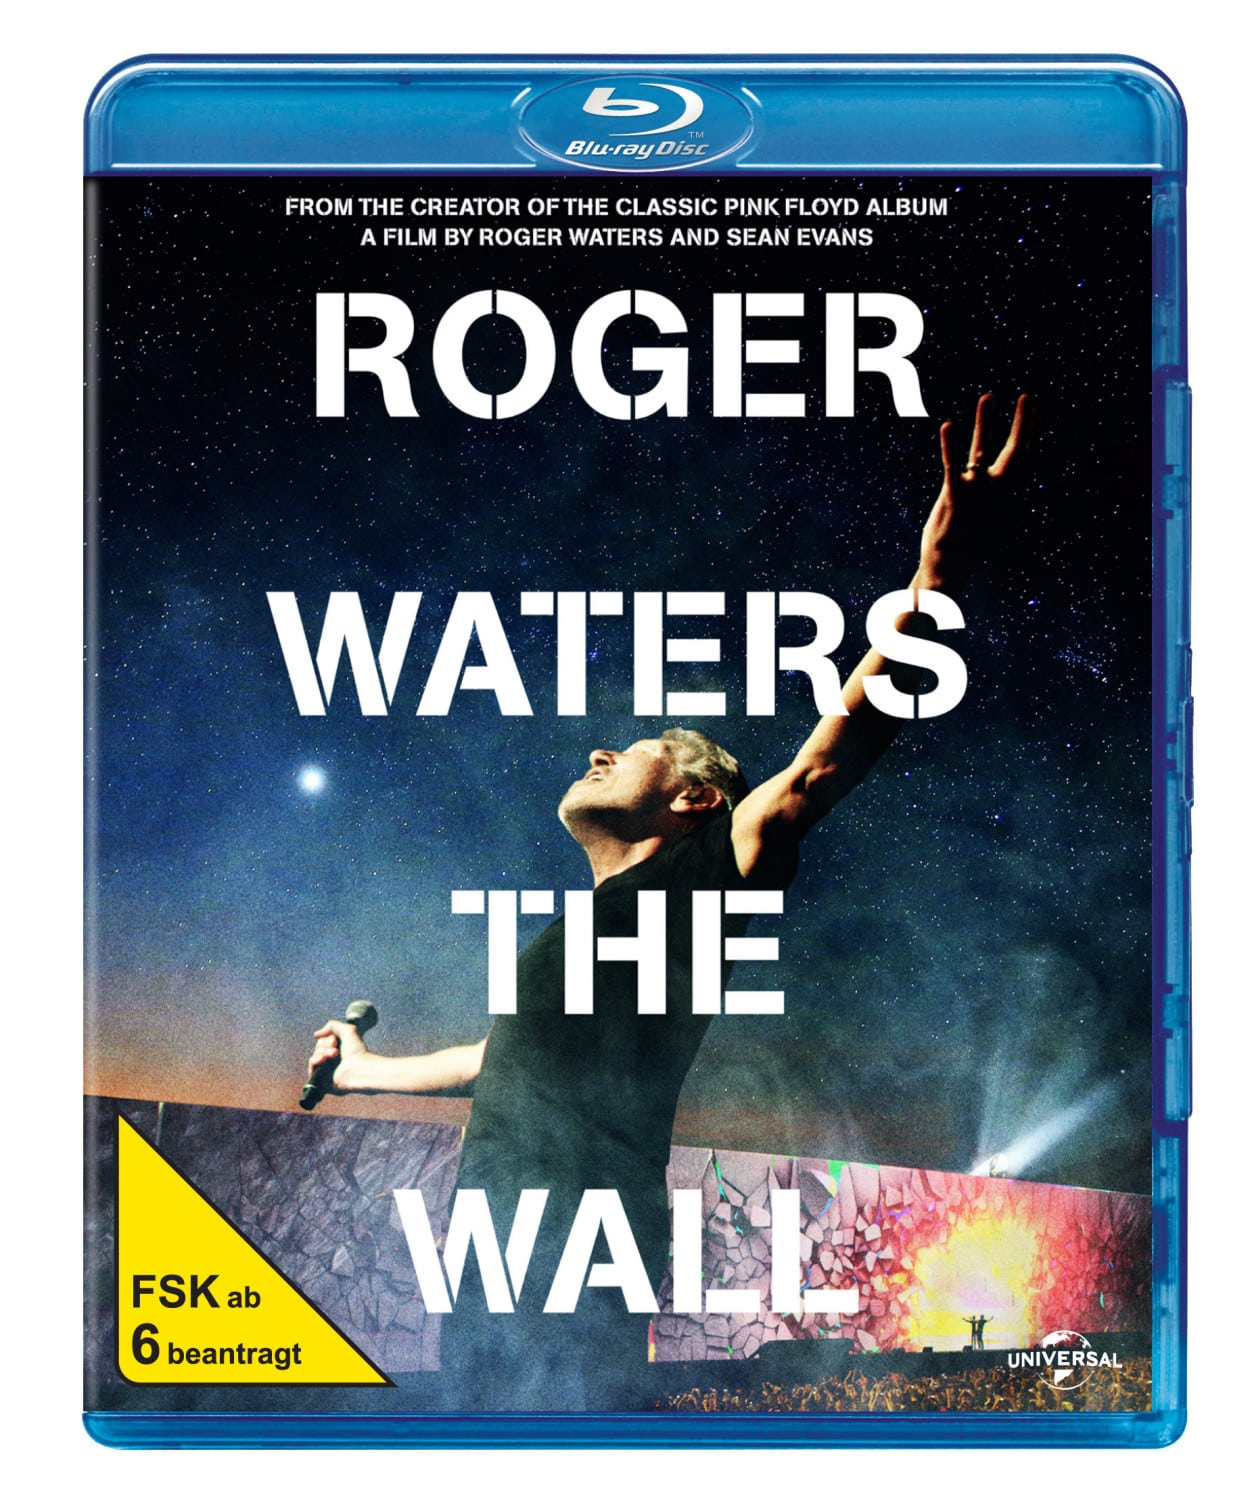 Roger Waters THE WALL - Ratgeberspiel